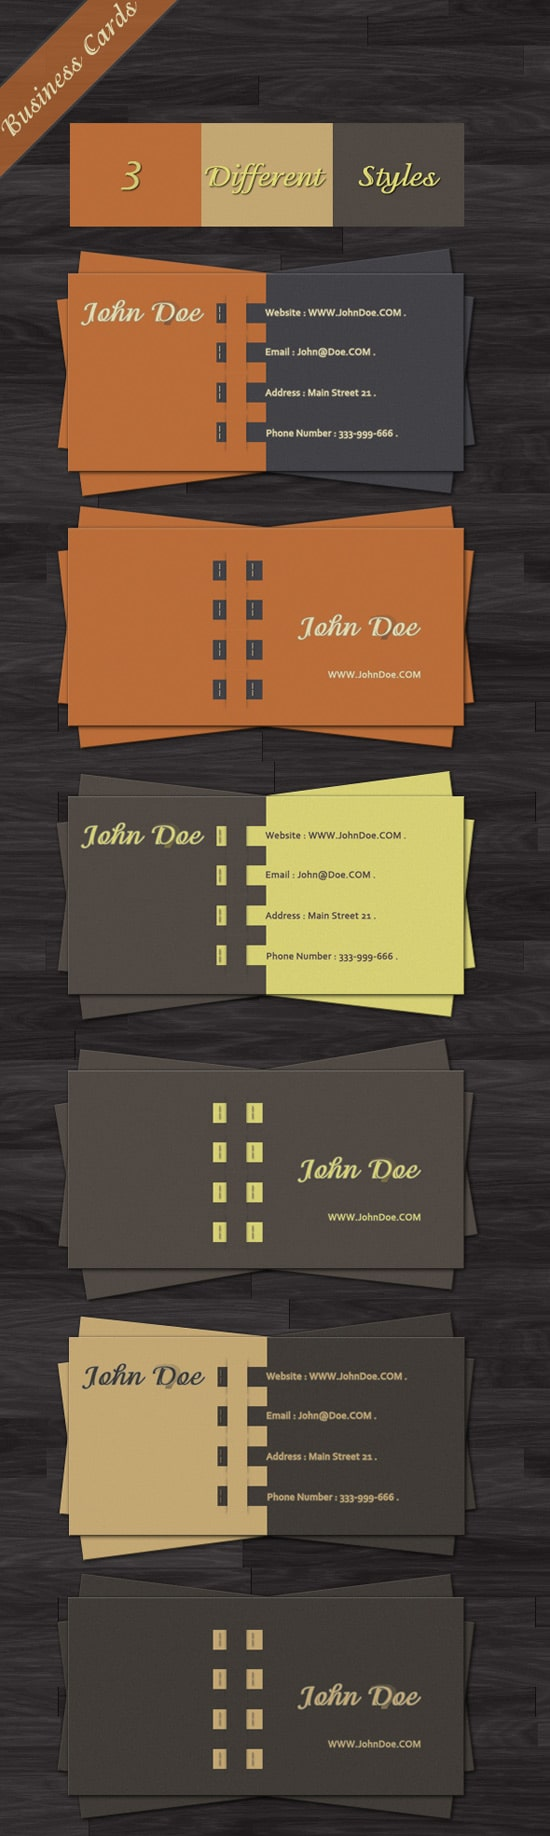 100 free business card templates designrfix business is business free psd vector business card fbccfo Images